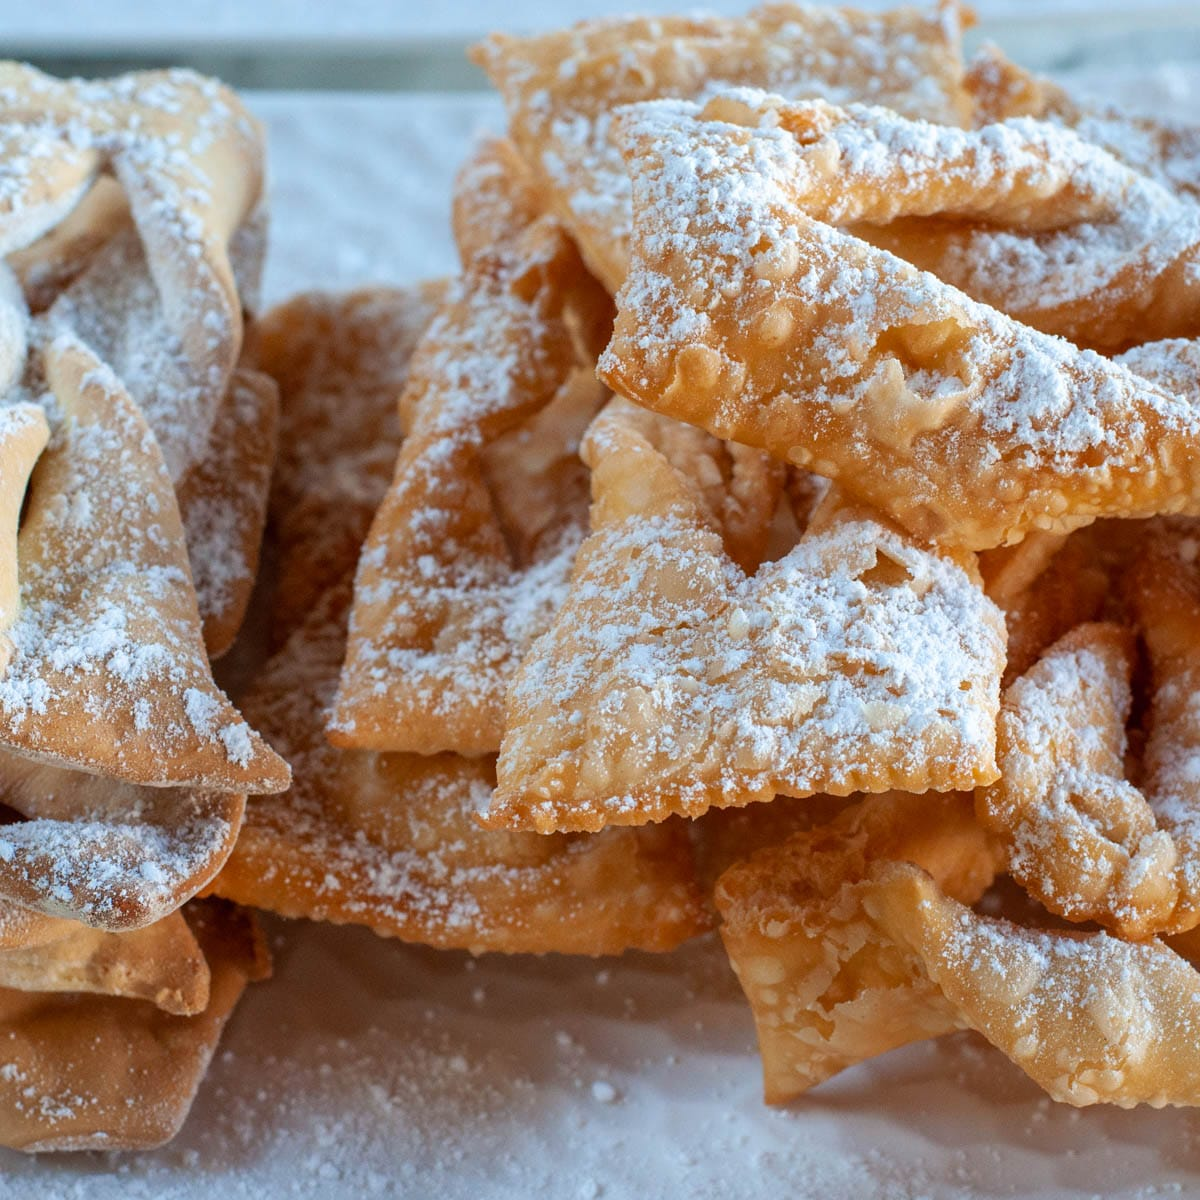 Orelliette Chiacchiere on a serving dish dusted with icing sugar